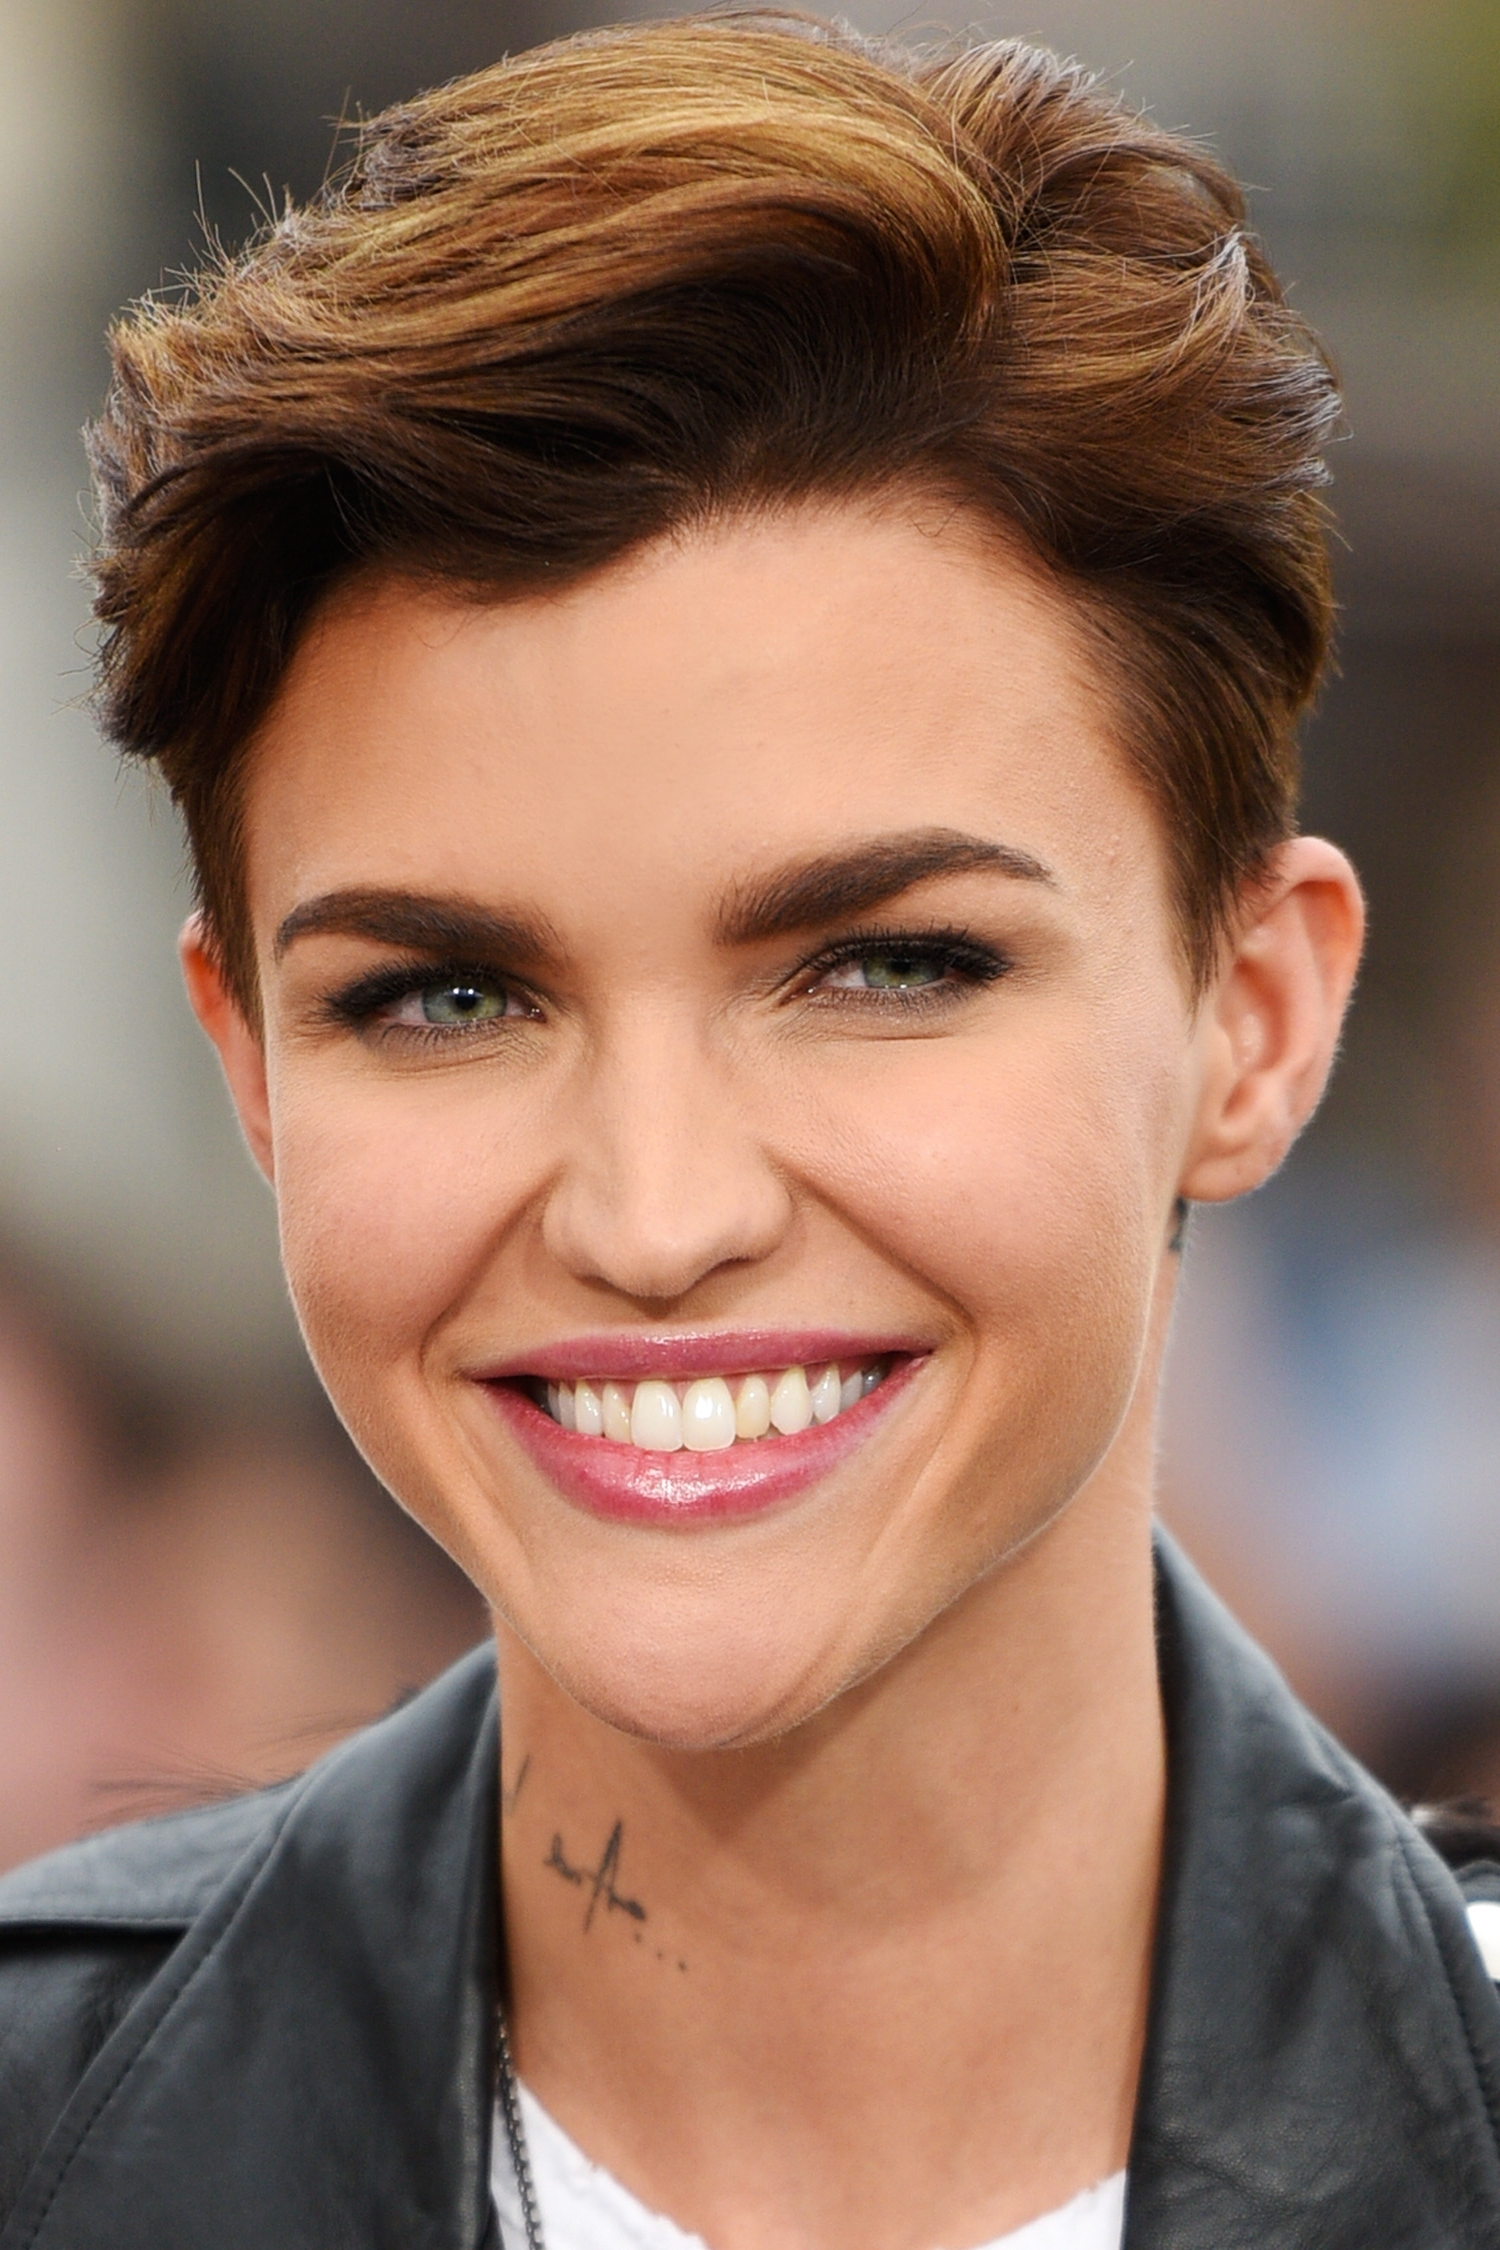 The Best Pixie Hairstyles For Women